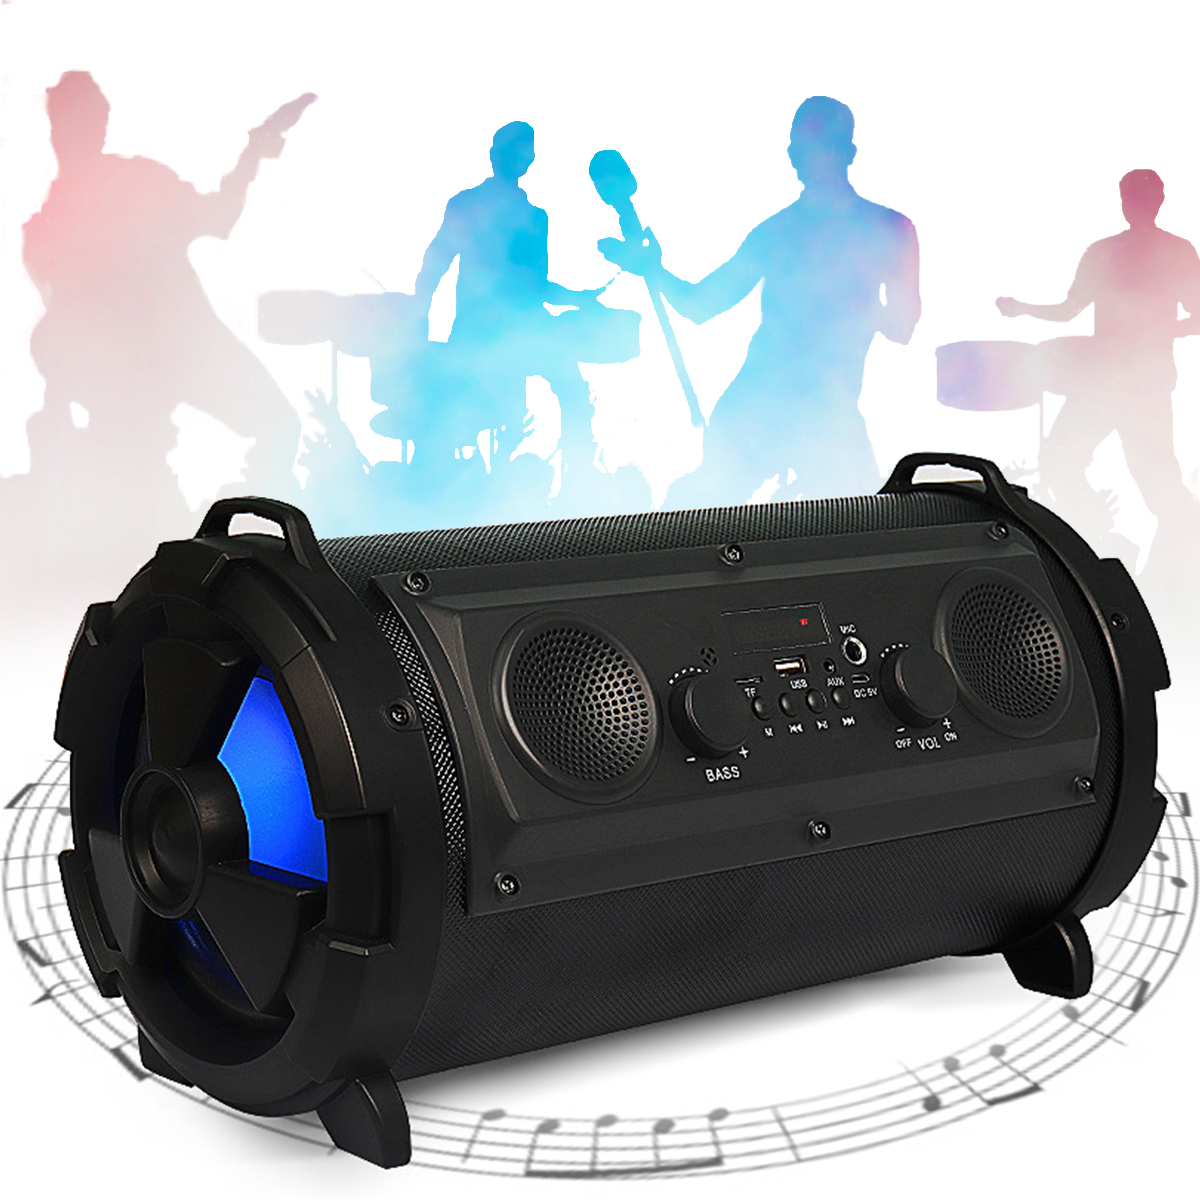 Portable Wireless Bluetooth Speaker Subwoofer With Misic Super Bass Speakers HIFI Stereo TF Card Outdoor Loundspeaker super bass outdoor bluetooth speaker wireless sports portable subwoofer bike car music speakers tf card aux mp3 player